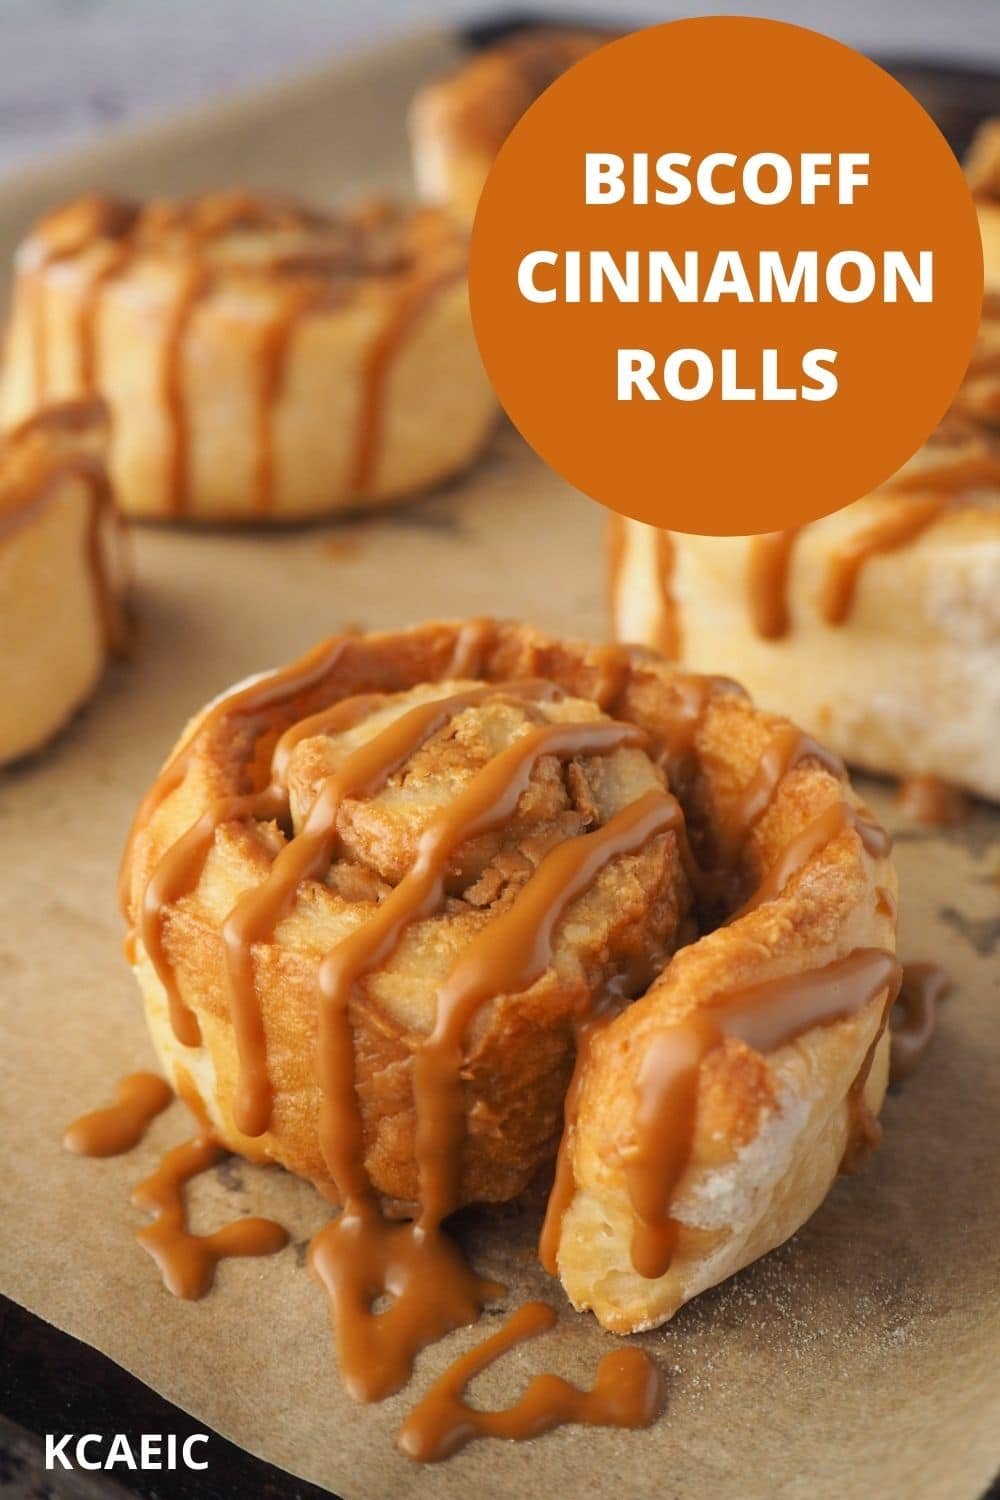 Biscoff roll drizzled with Biscoff on a baking tray, with text overlay, Biscoff Cinnamon Rolls, KCAEIC.